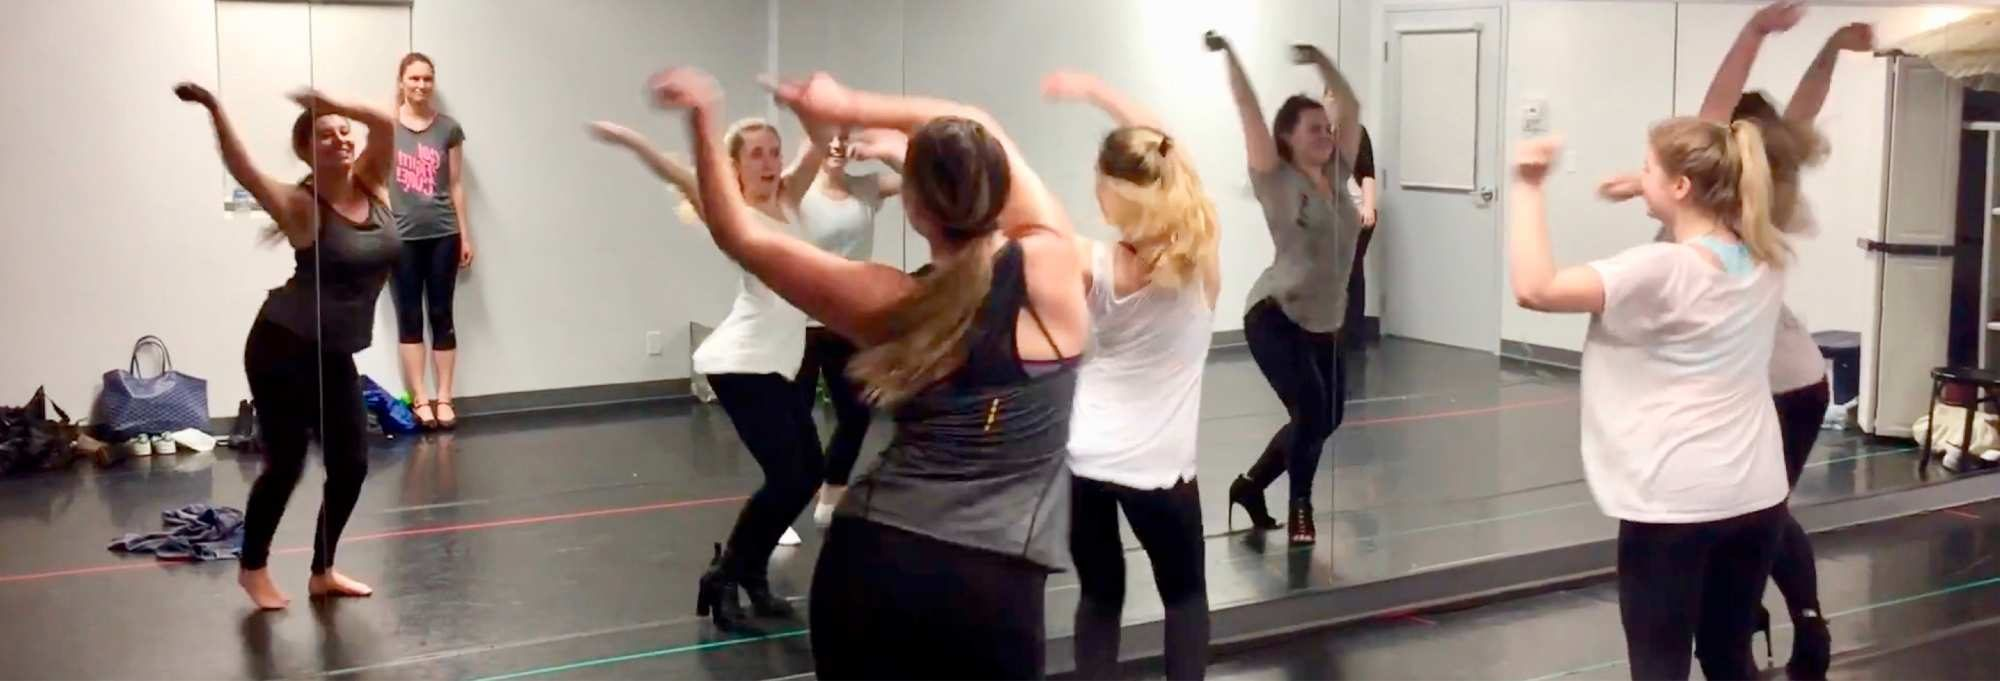 Dance-class-for-adults